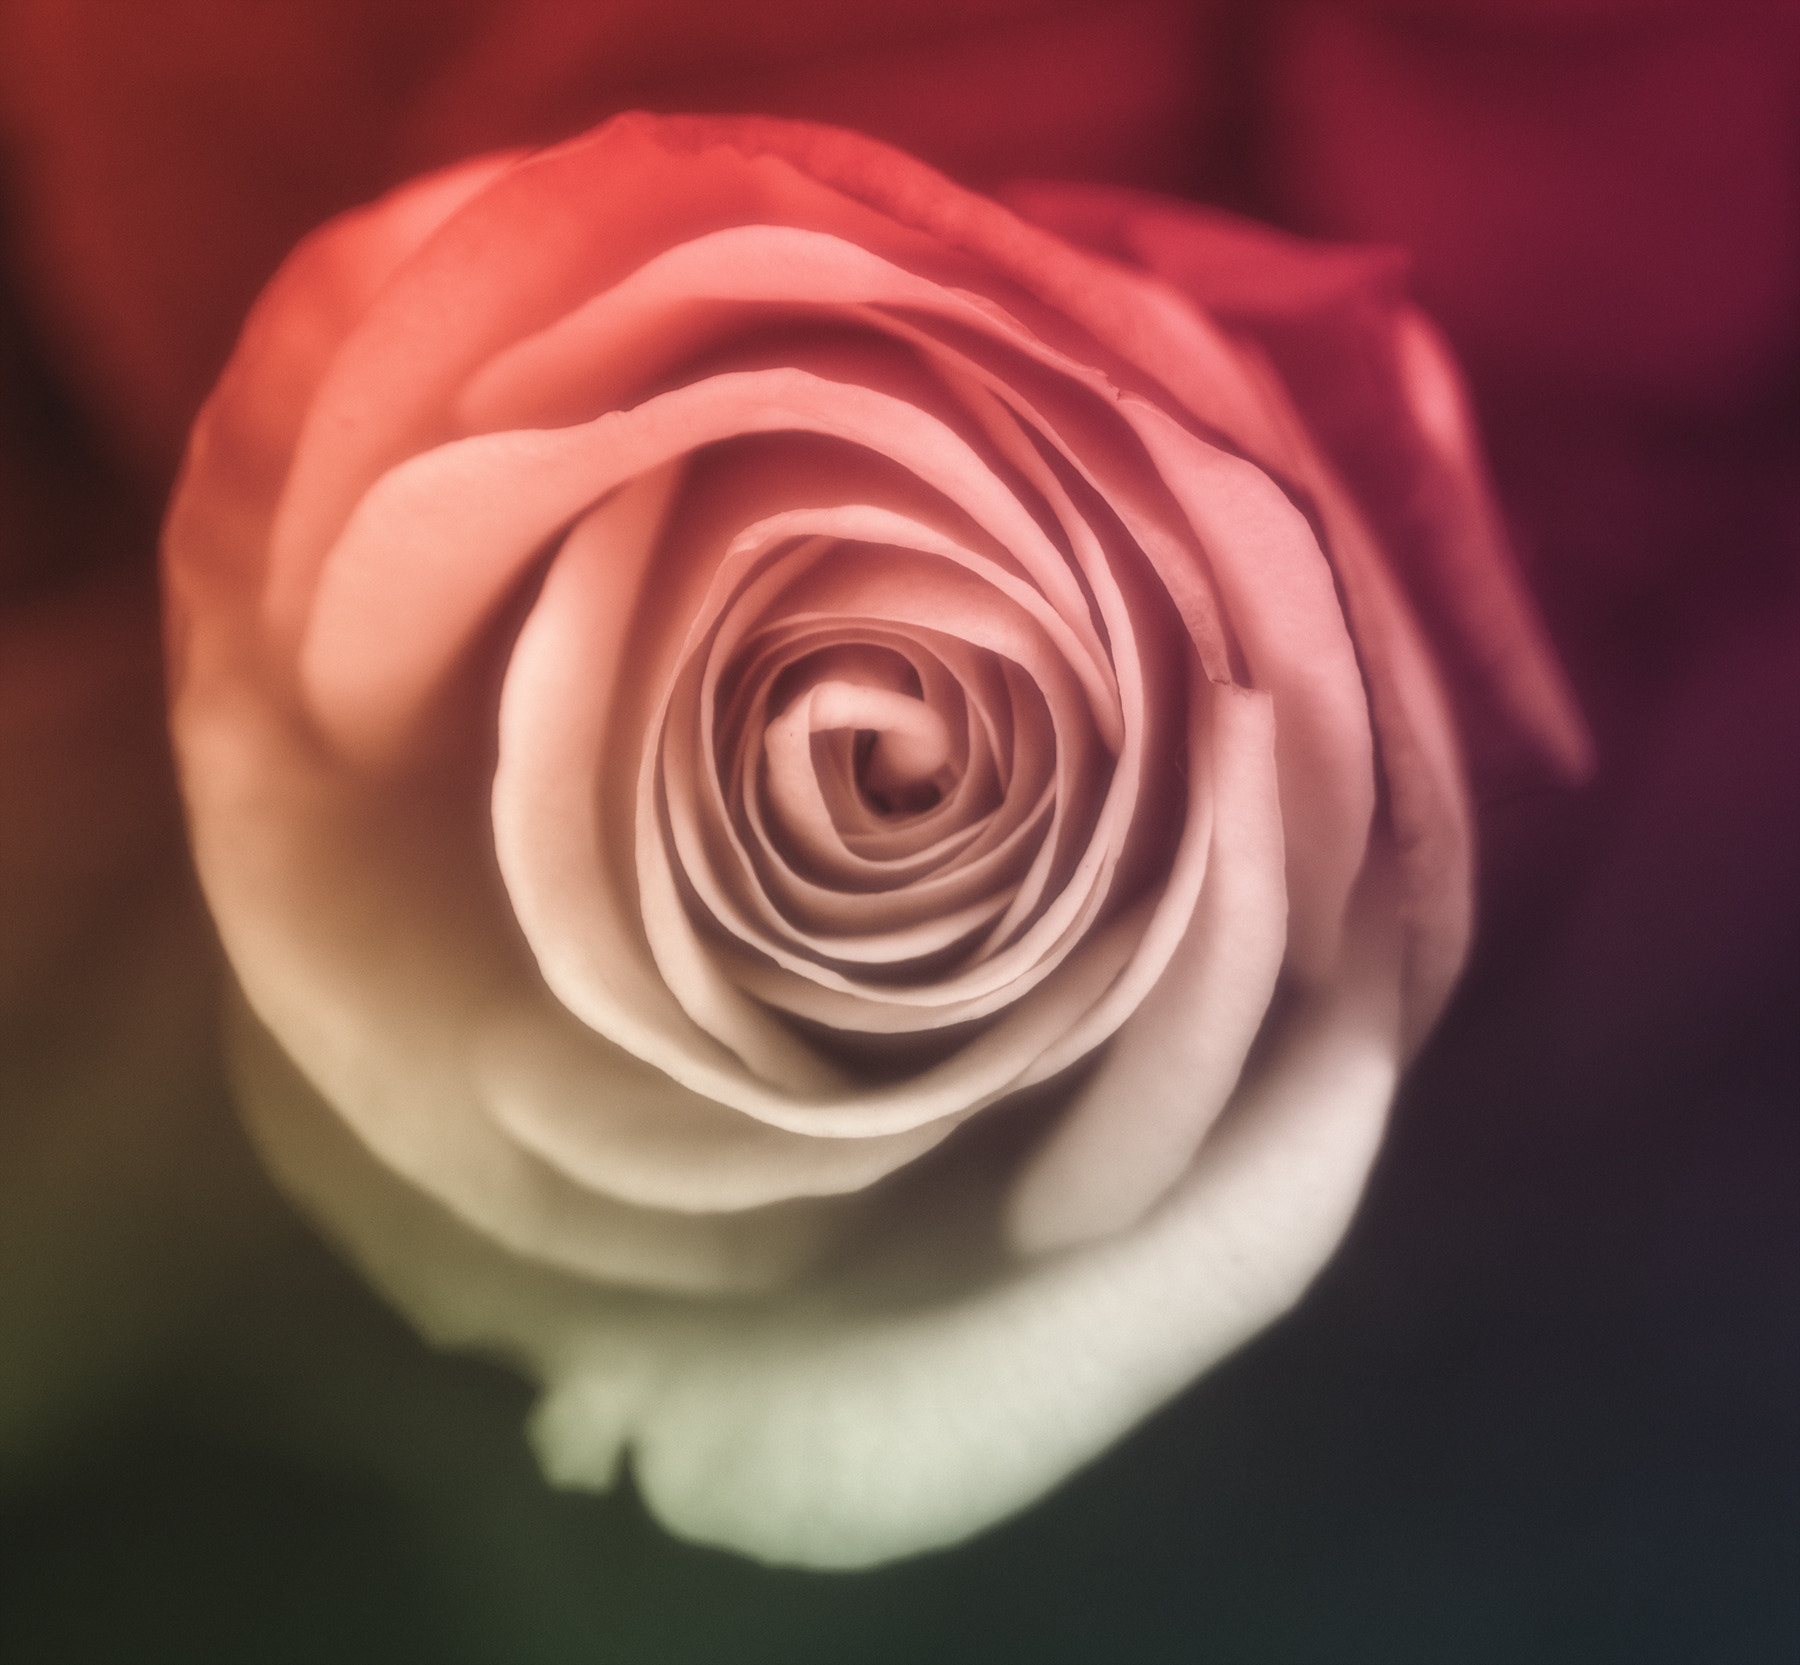 Photograph Rose by Ola Warringer on 500px